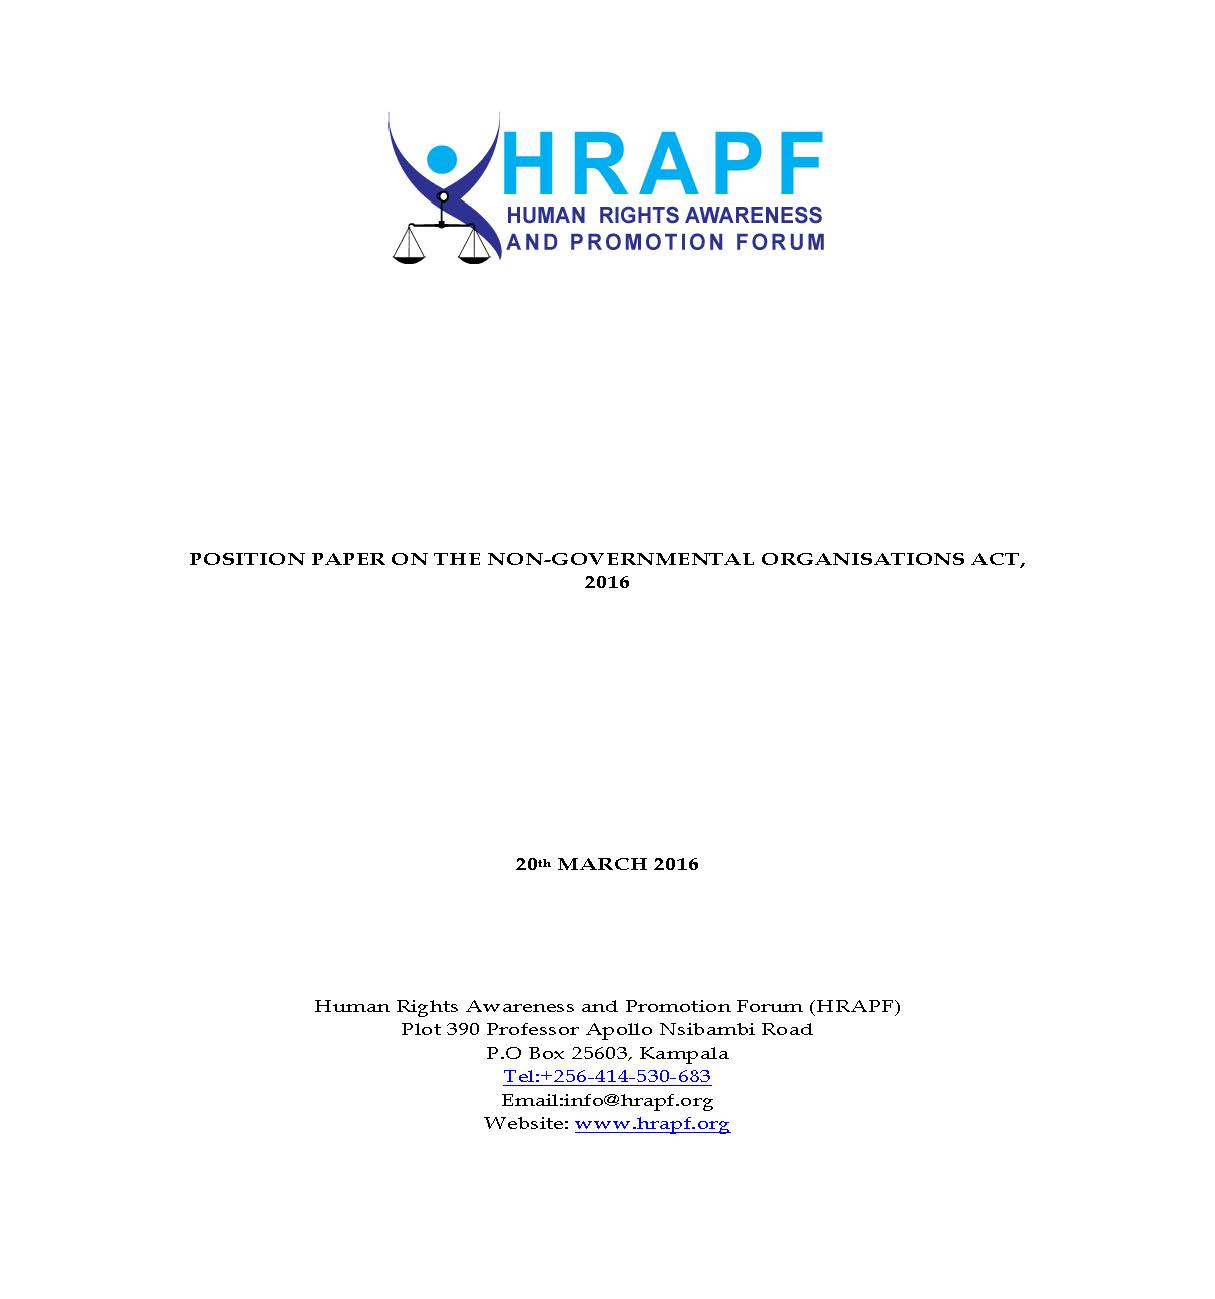 HRAPF's Position Paper on the NGO Act 2016